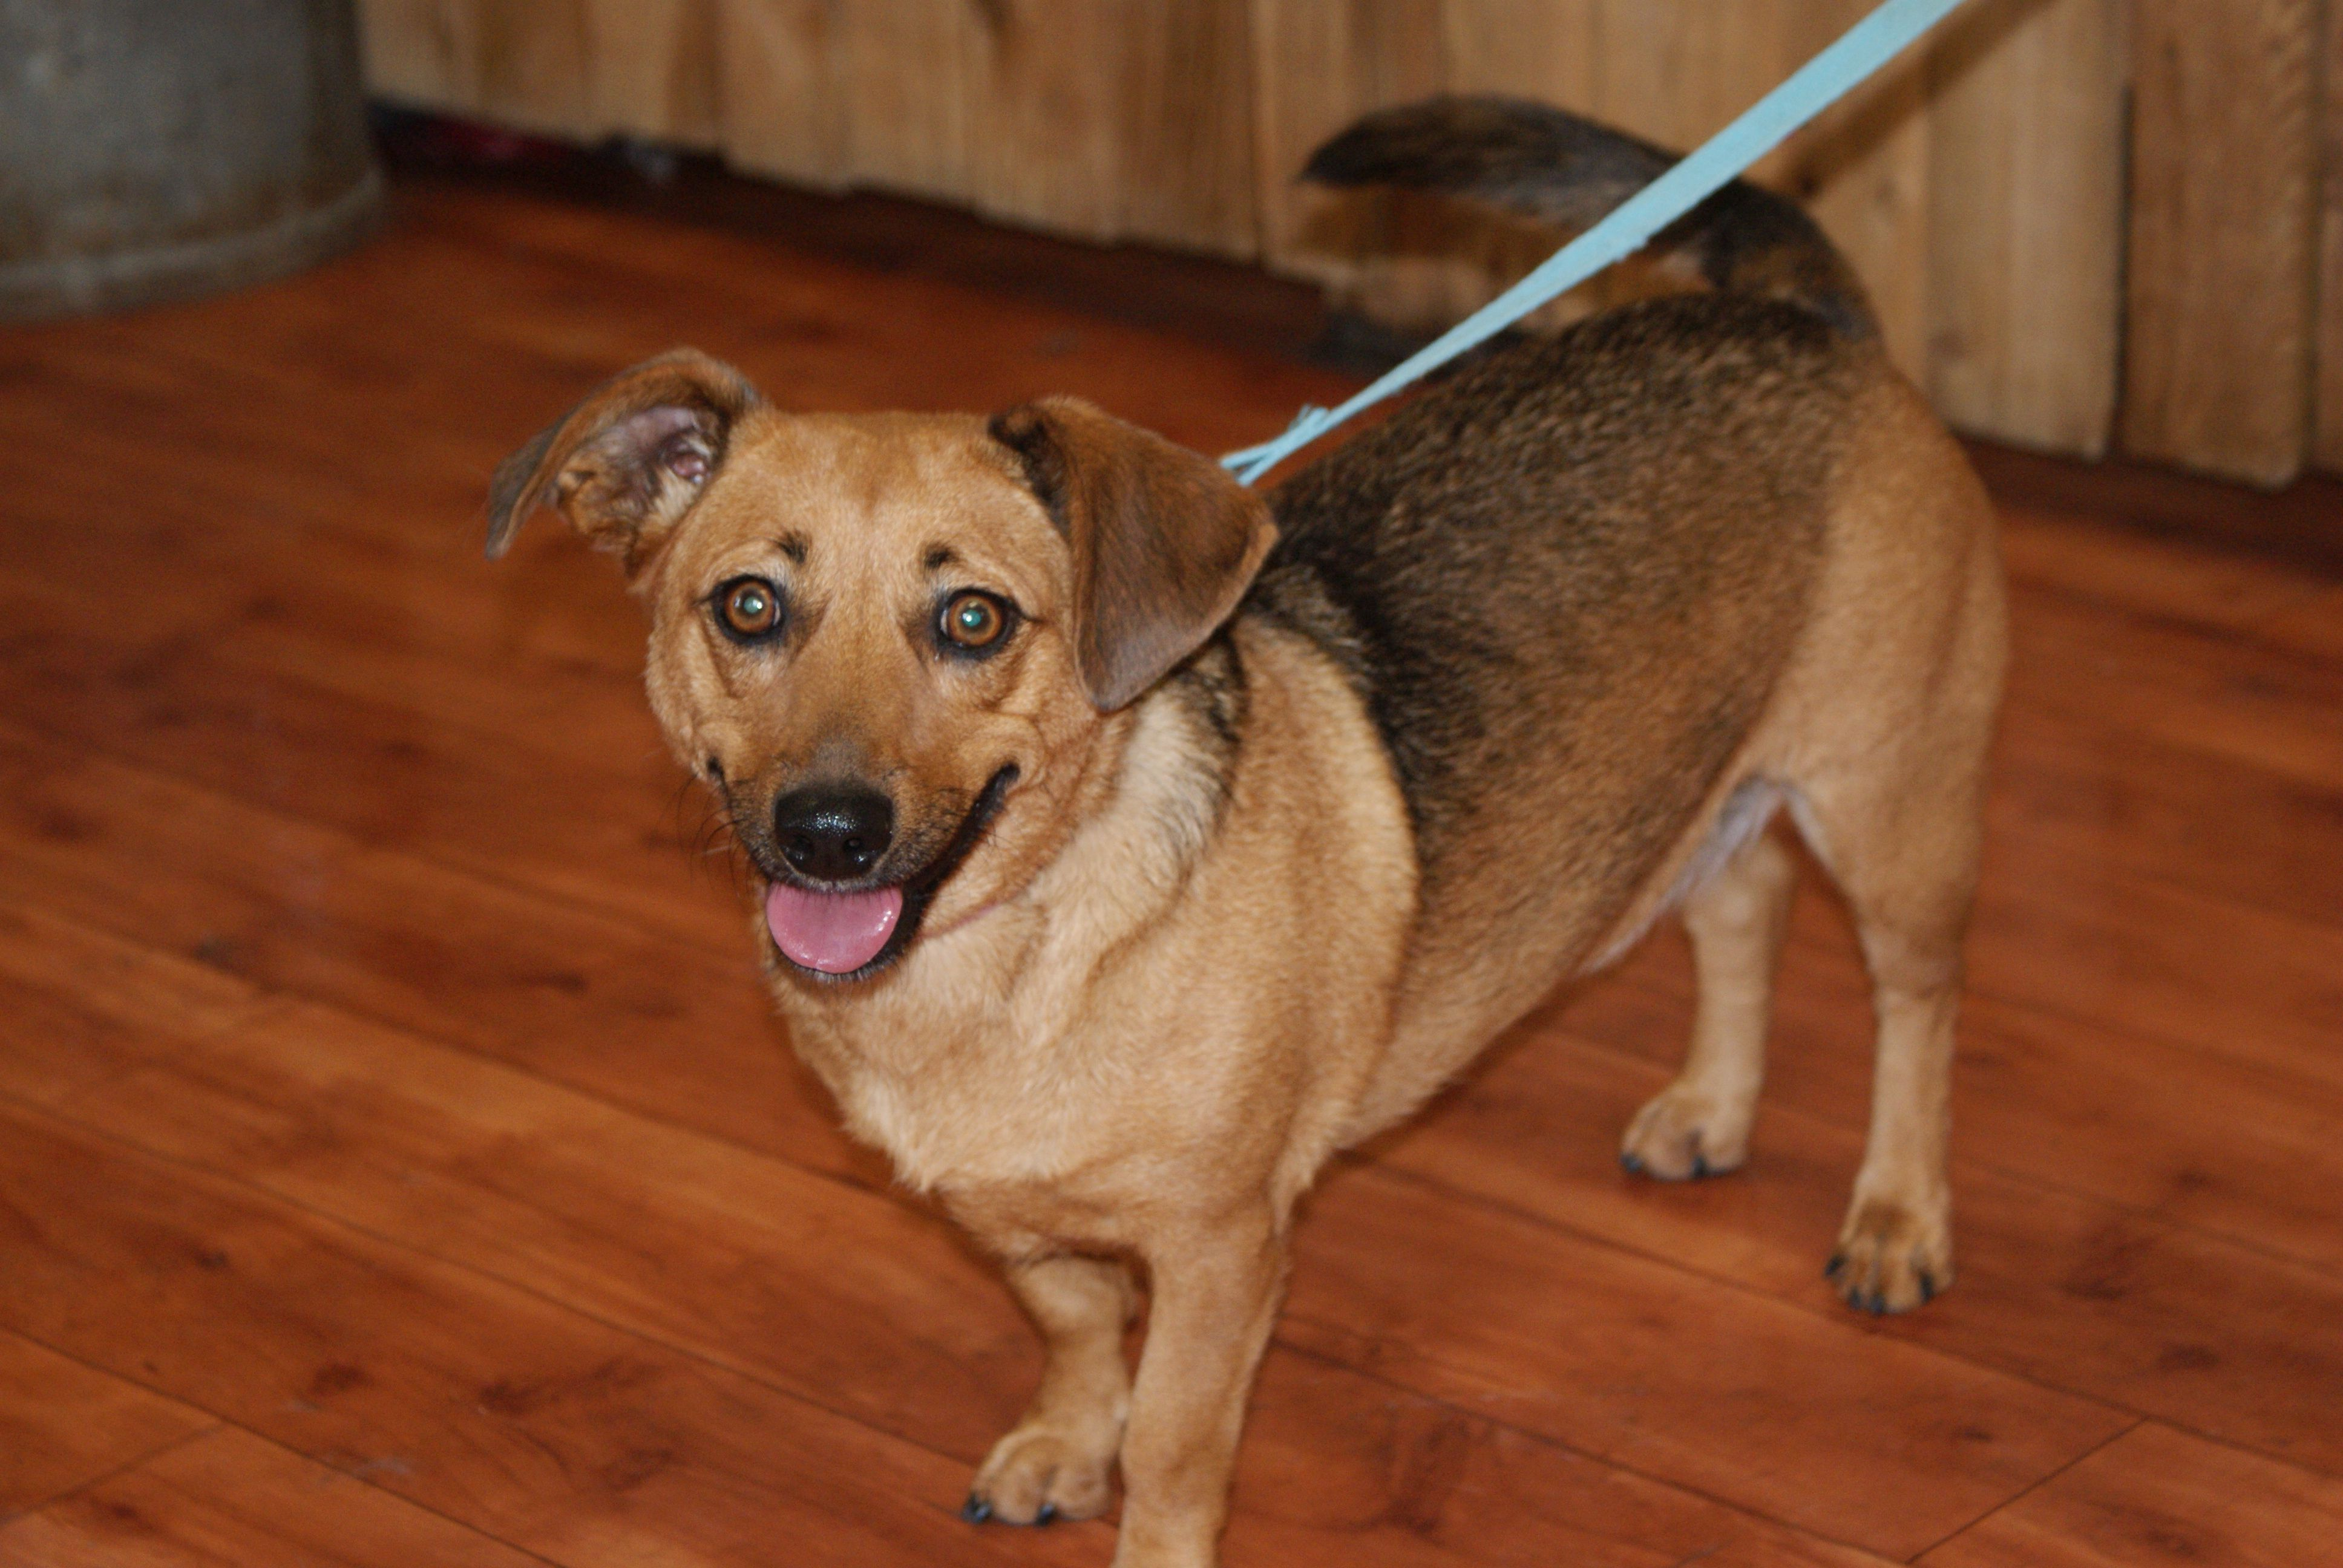 Happy girl, Gracie! She is a red heeler/daschund  mix. You can find more information about her on petfinder.com